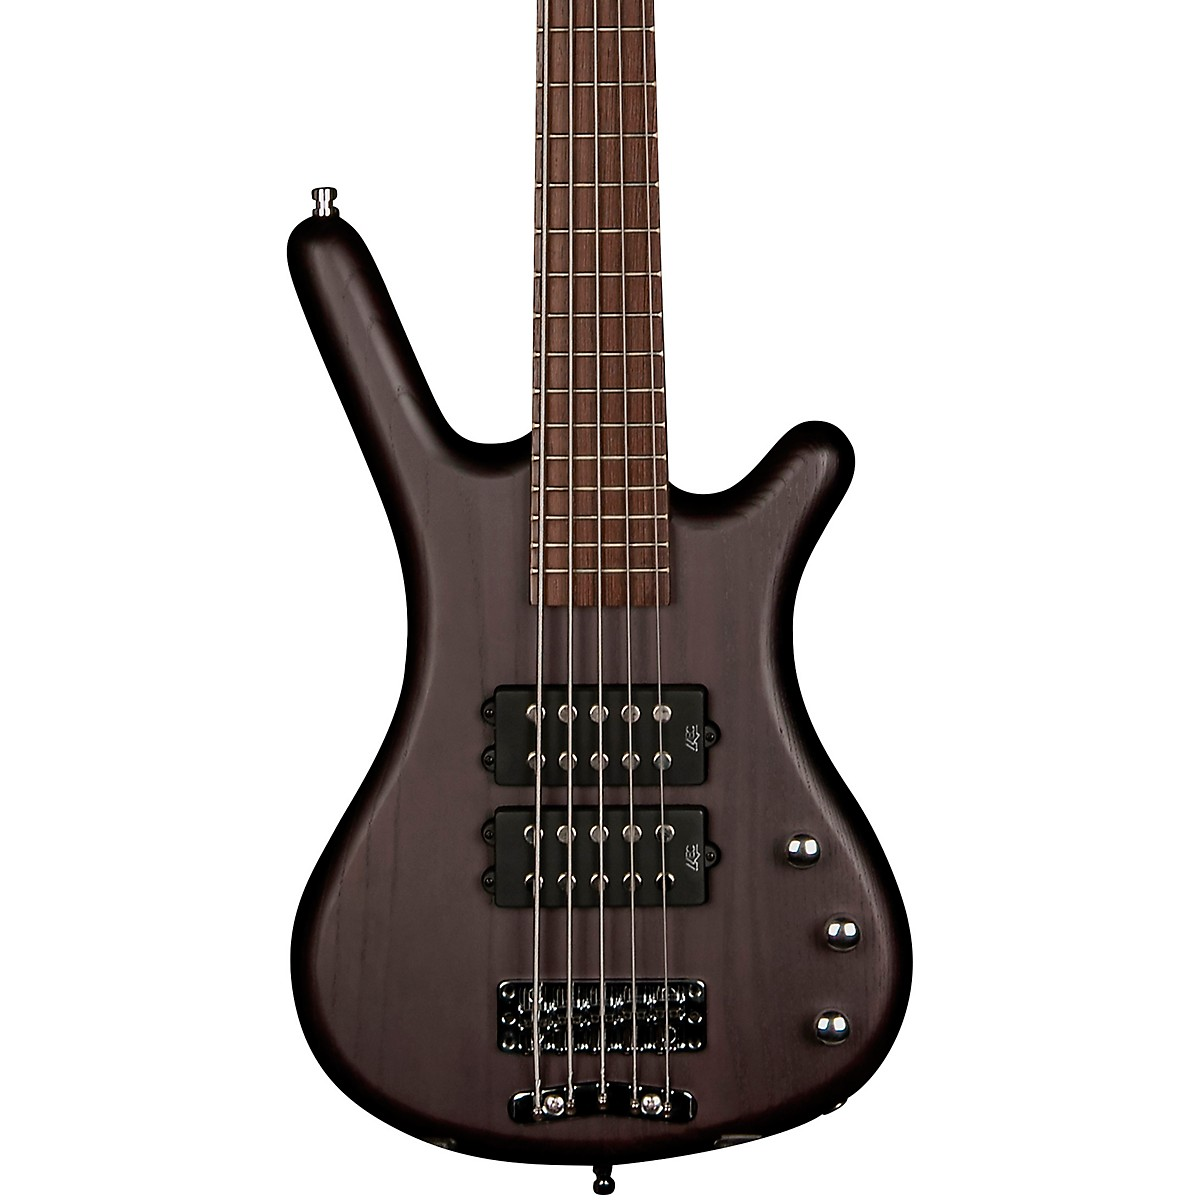 Warwick Corvette $$ 5-String Electric Bass Guitar with Wenge Fingerboard